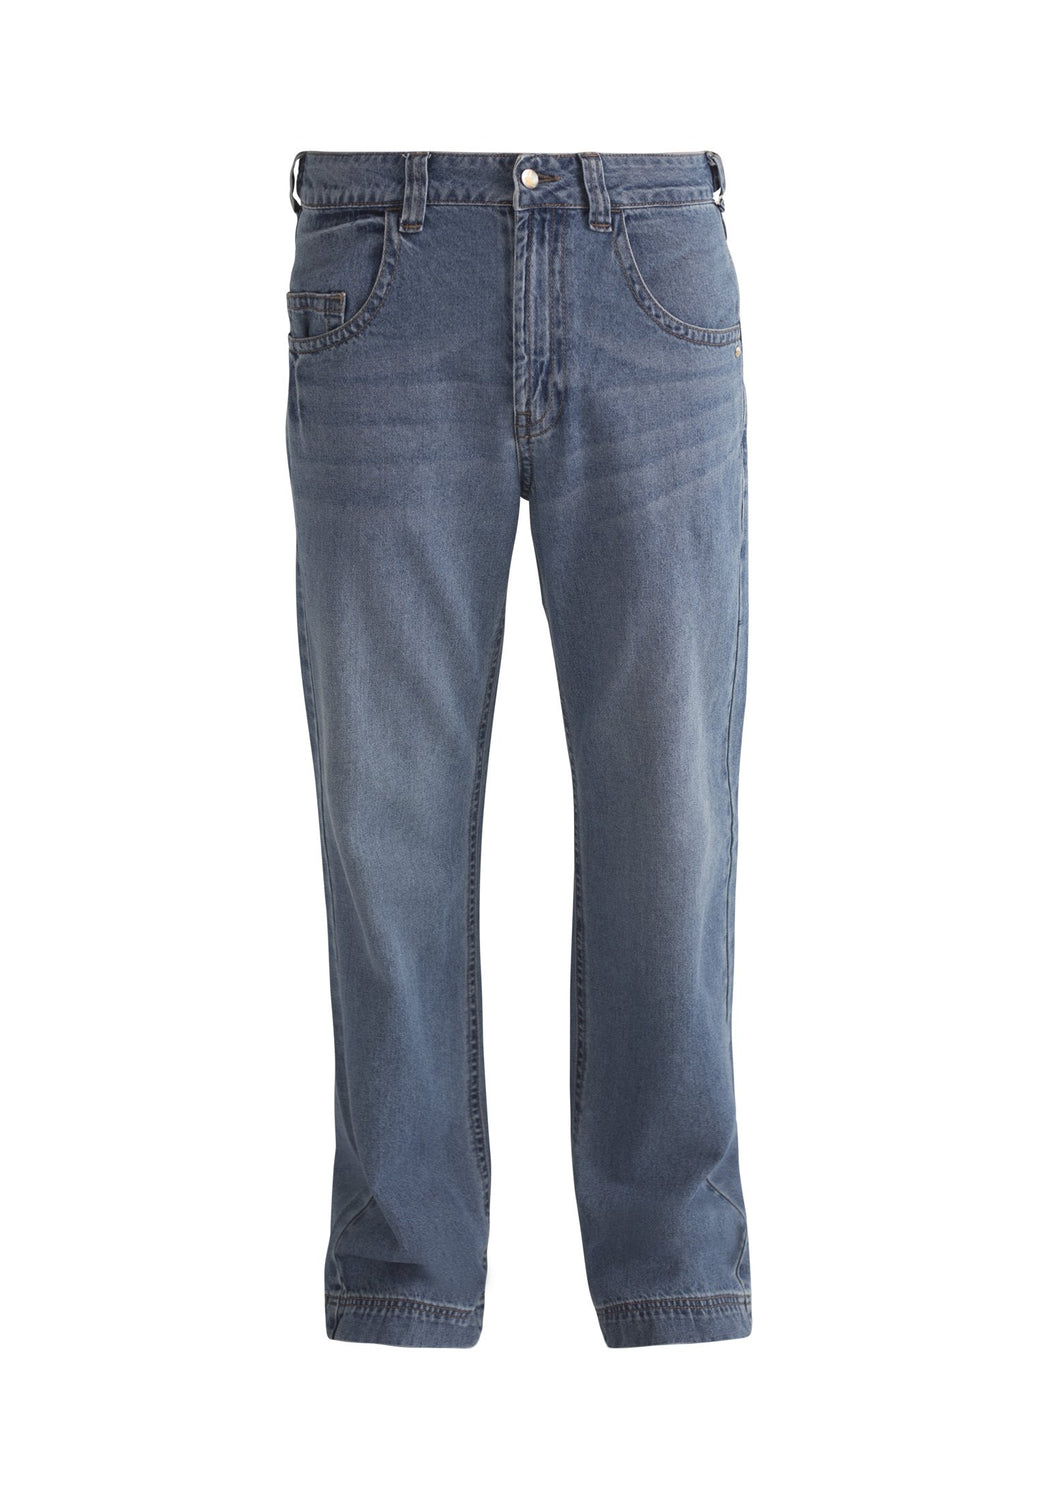 SLOUCH // Organic Loose Fit Jean in Light Vintage Wash - Monkee Genes Organic Jeans Denim - Men's Wide Jeans Monkee Genes Official  Monkee Genes Official